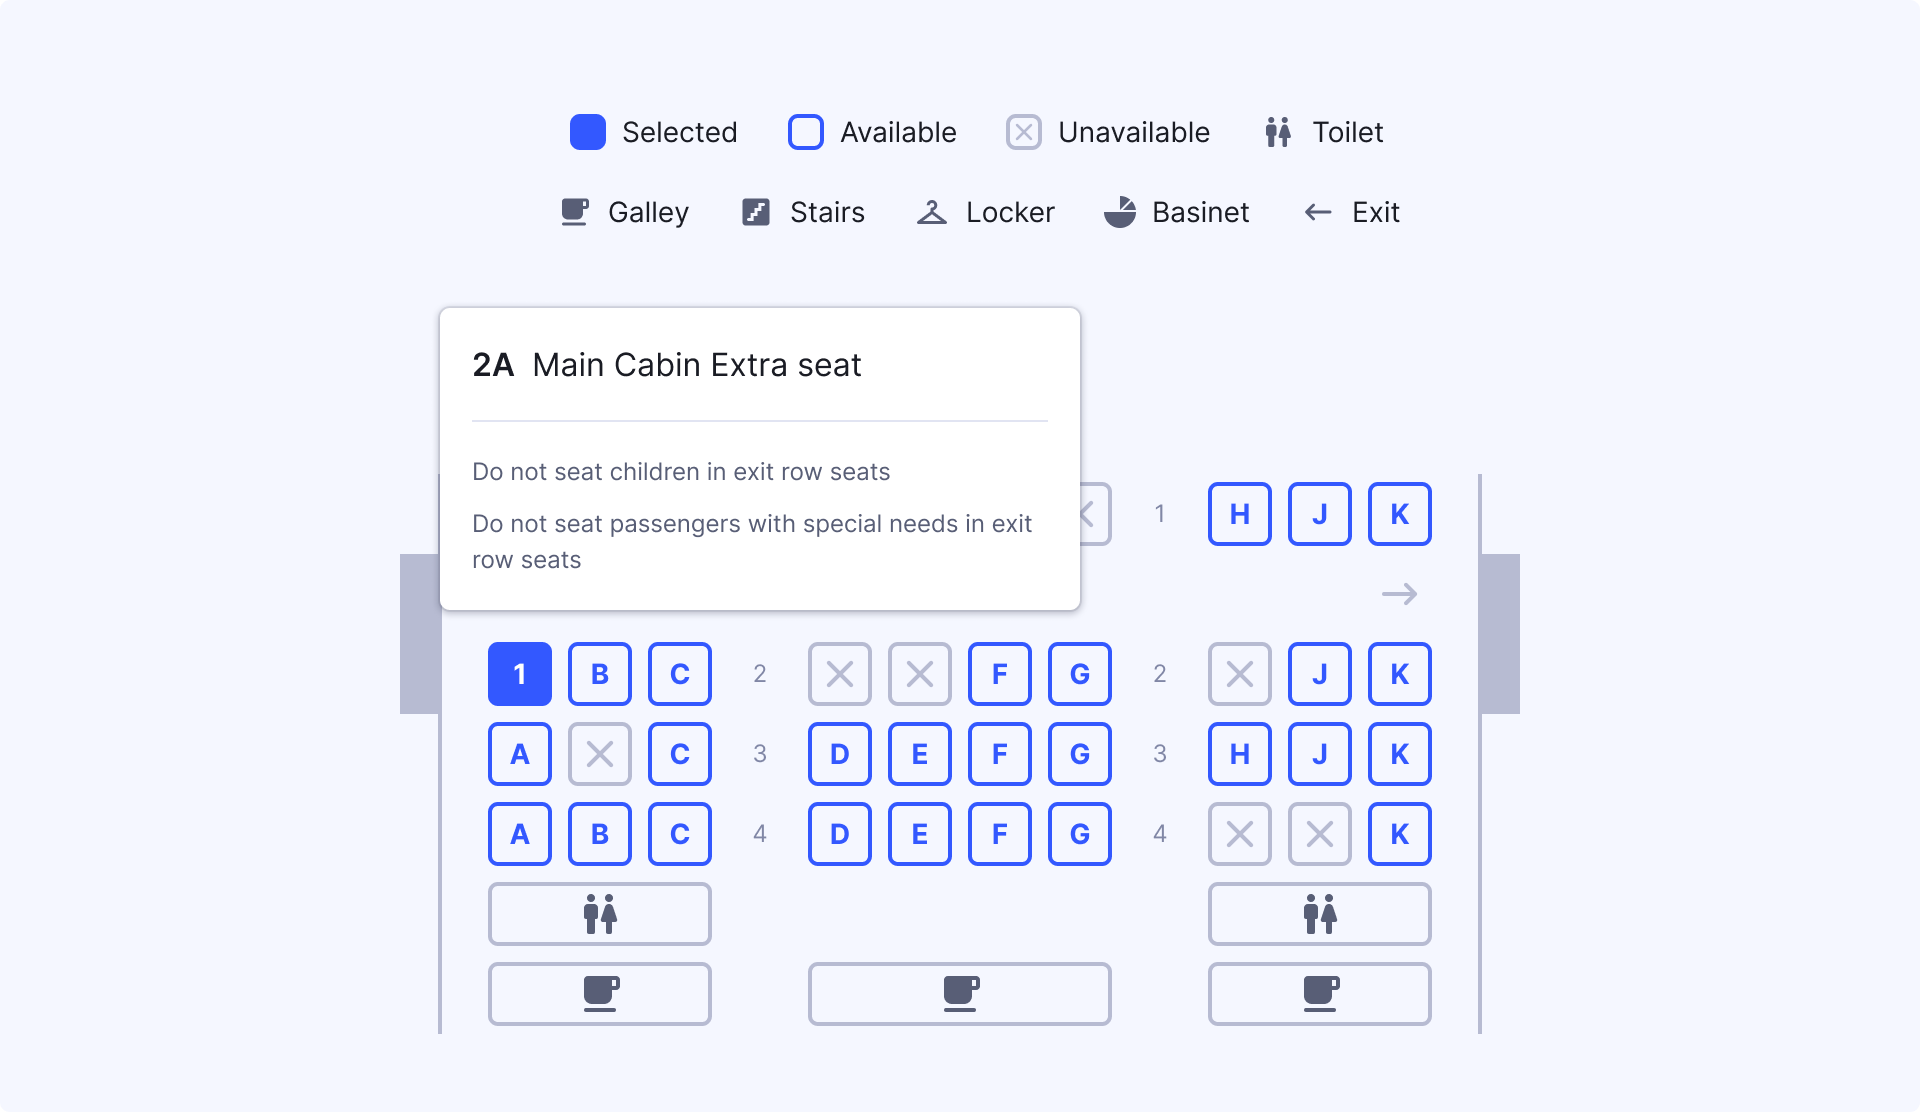 Image showing seat selection in Duffel booking tool